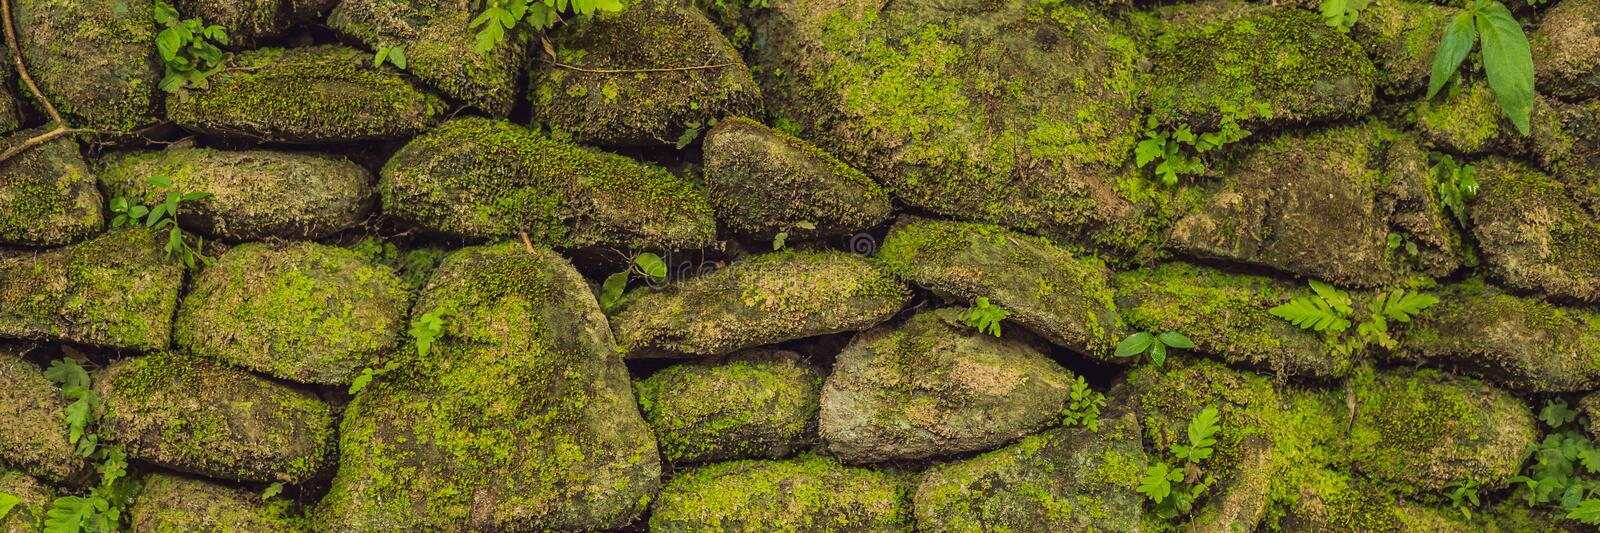 Texture of old stone wall covered green moss in Fort Rotterdam, Makassar - Indonesia BANNER, long format. Texture of old stone wall covered green moss in Fort stock image